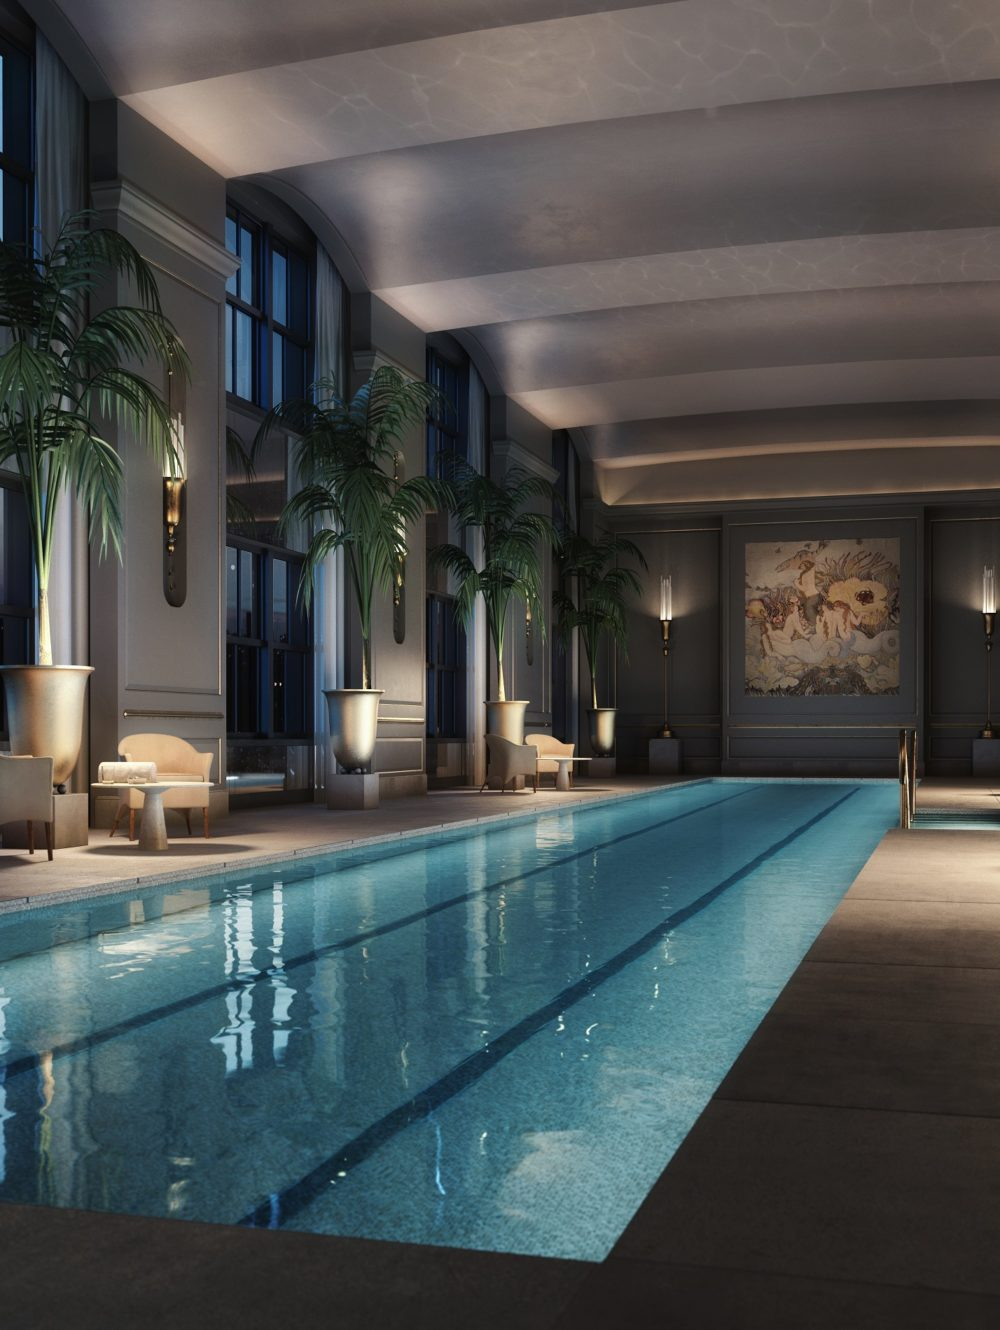 View of 111 West 57th street pool with double-high vaulted ceilings and private cabanas during an New York City evening.